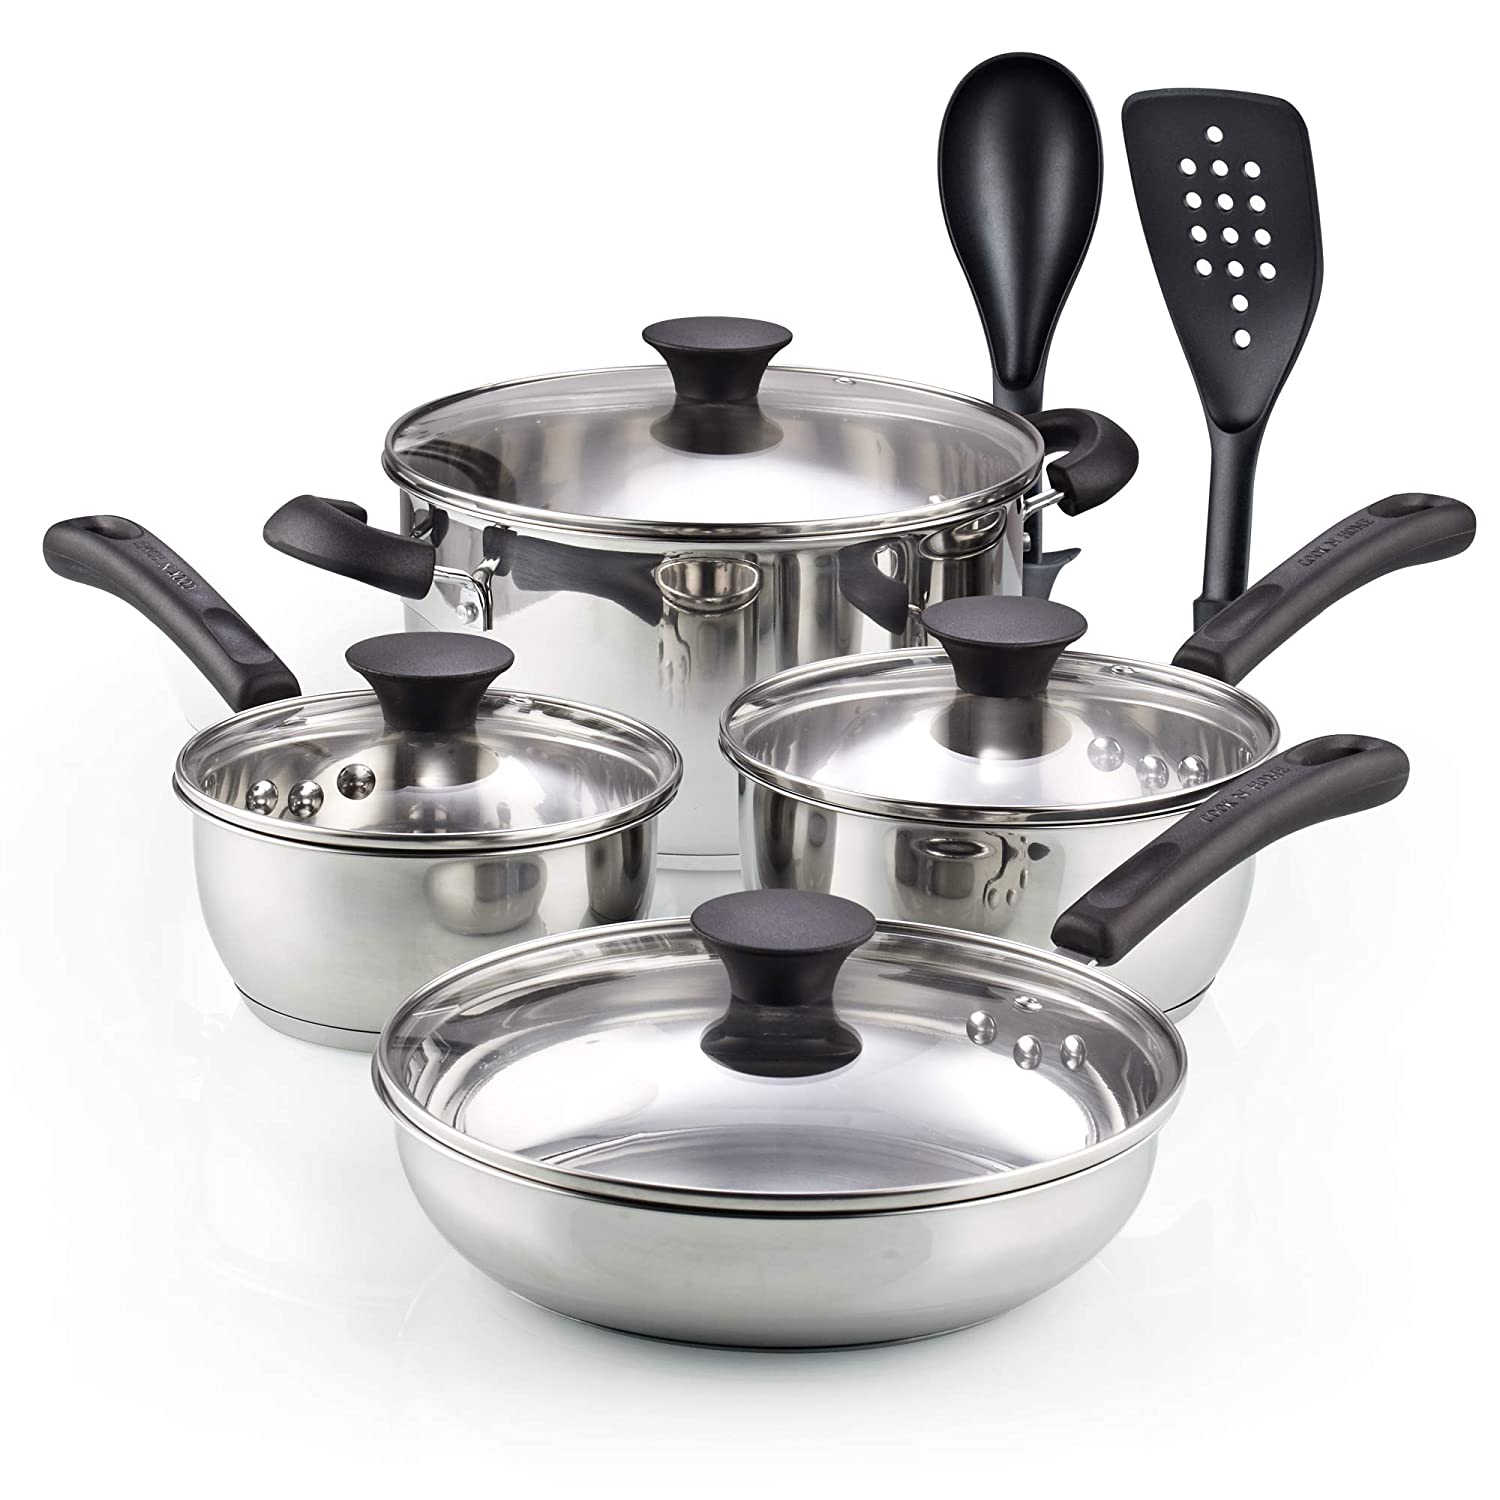 Cook N Home 02642 10 Pieces Stainless Steel Cookware Set, Silver